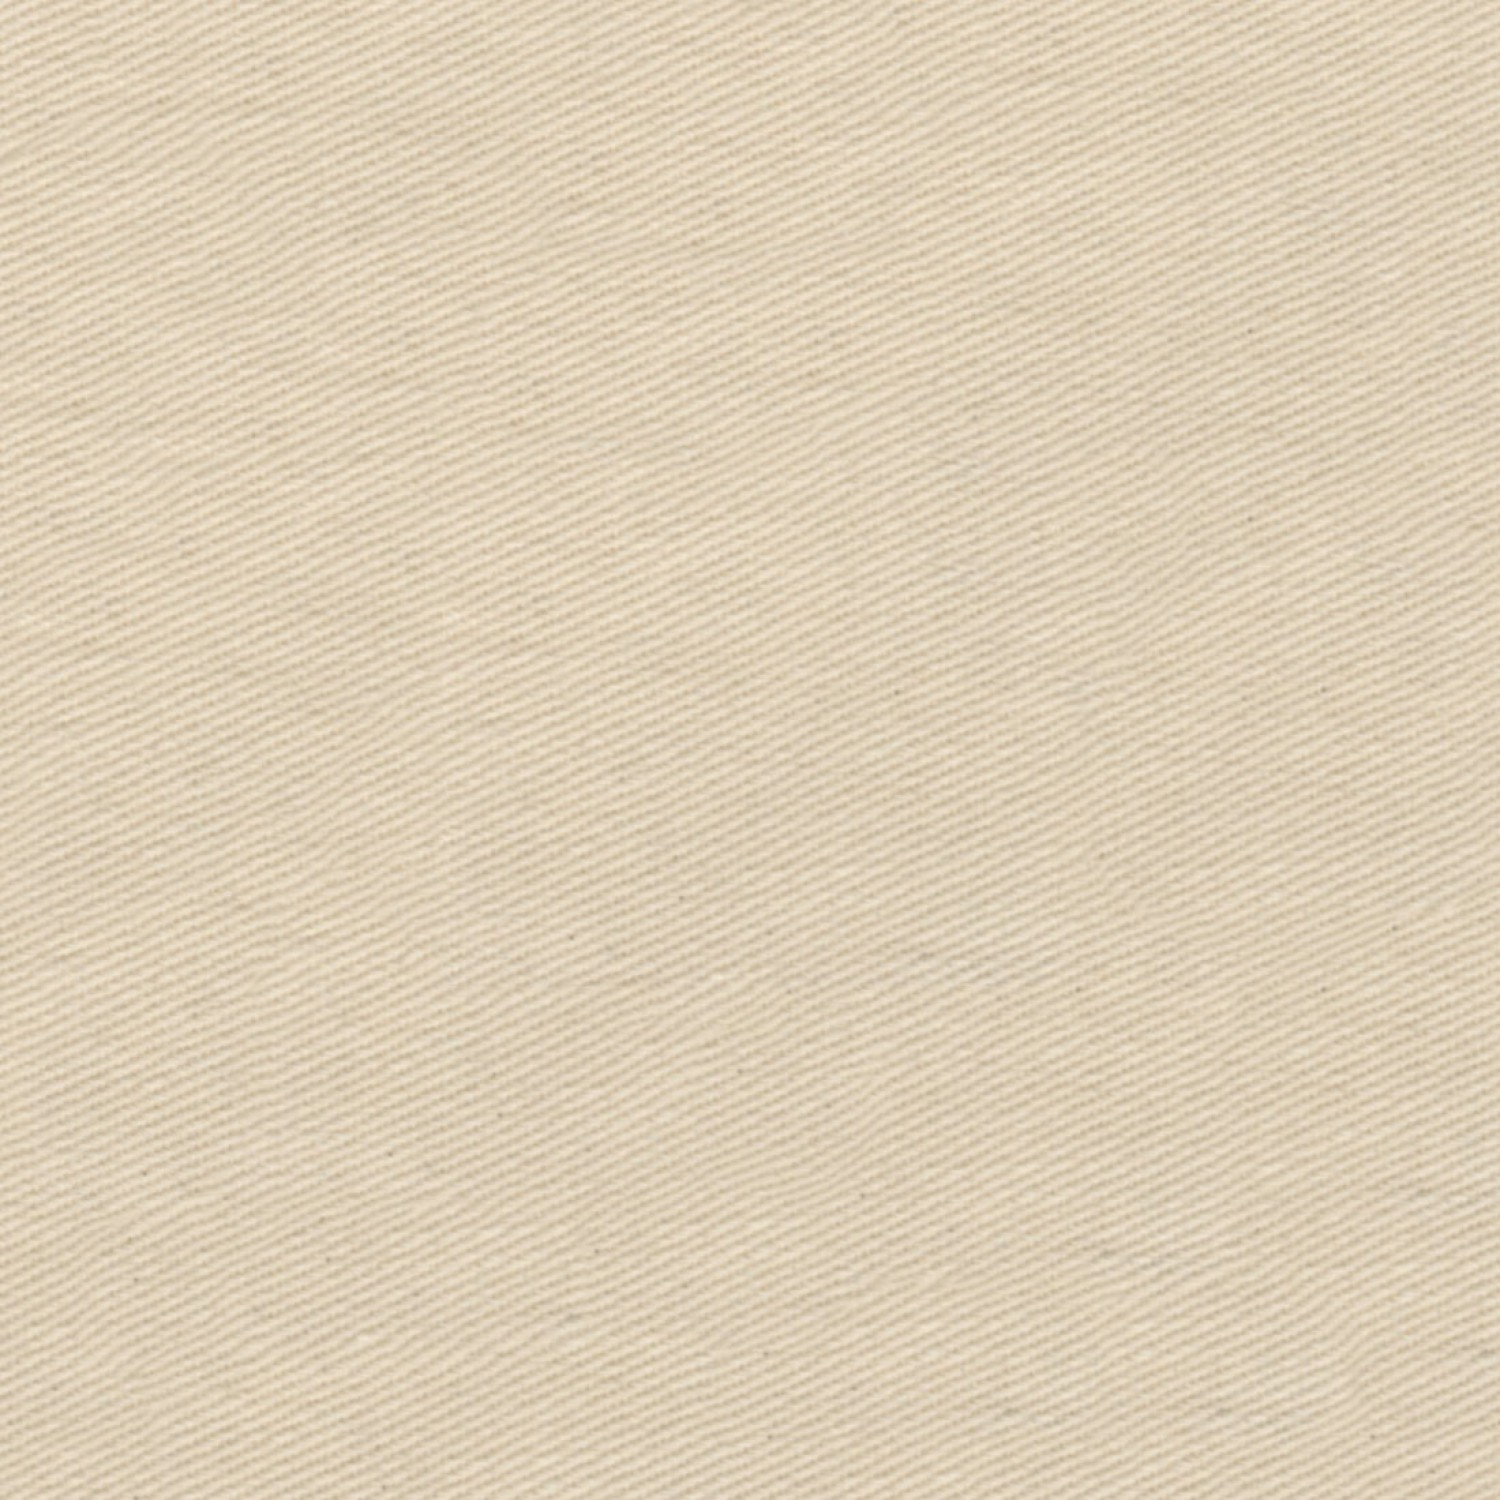 "Milestone Twill Antique Natural Fabric 7oz - 60"" Wide x Per Yard"